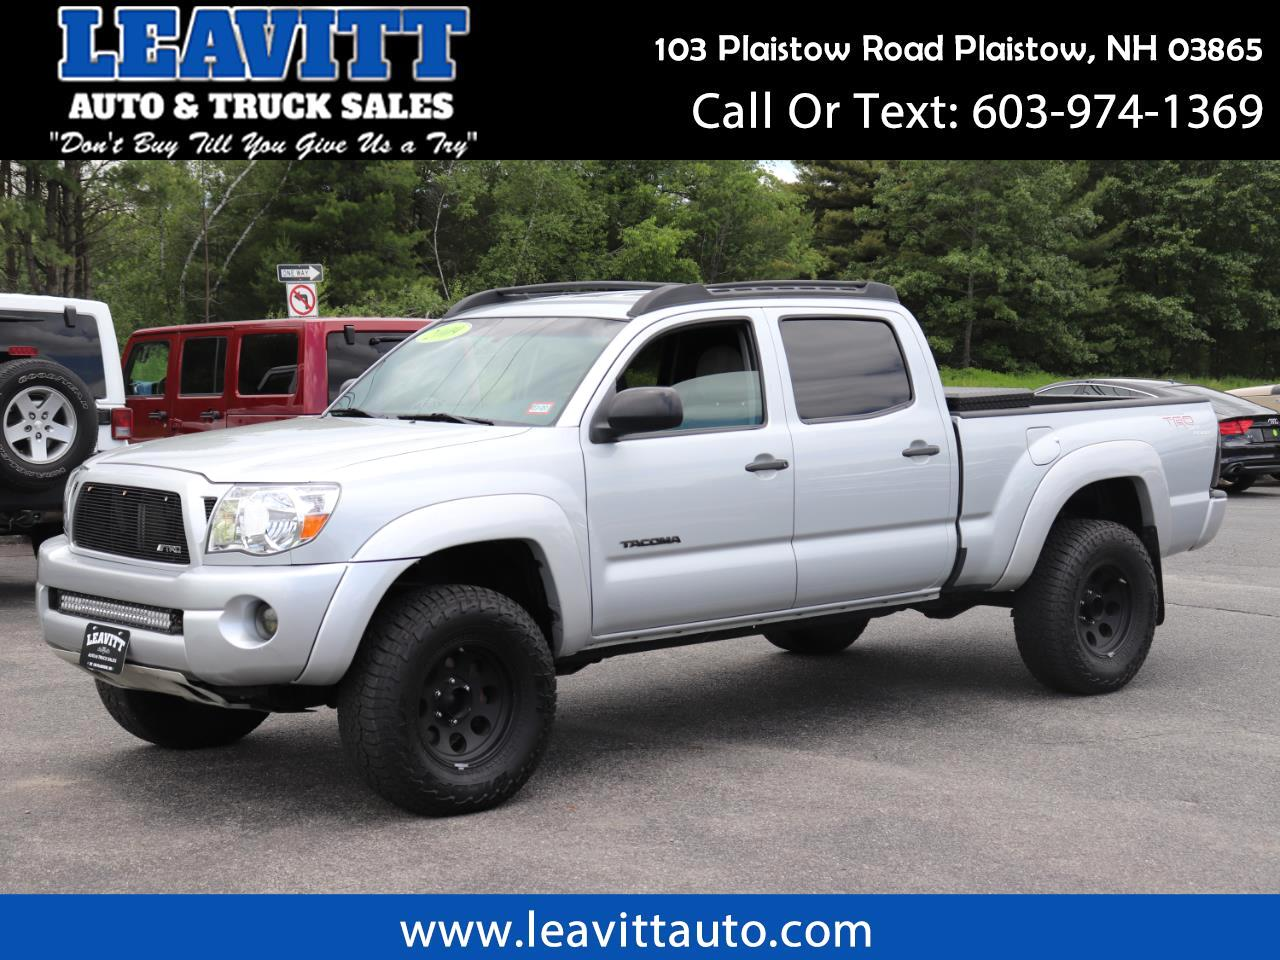 2009 Toyota Tacoma DOUBLE CAB LONG BED TRD